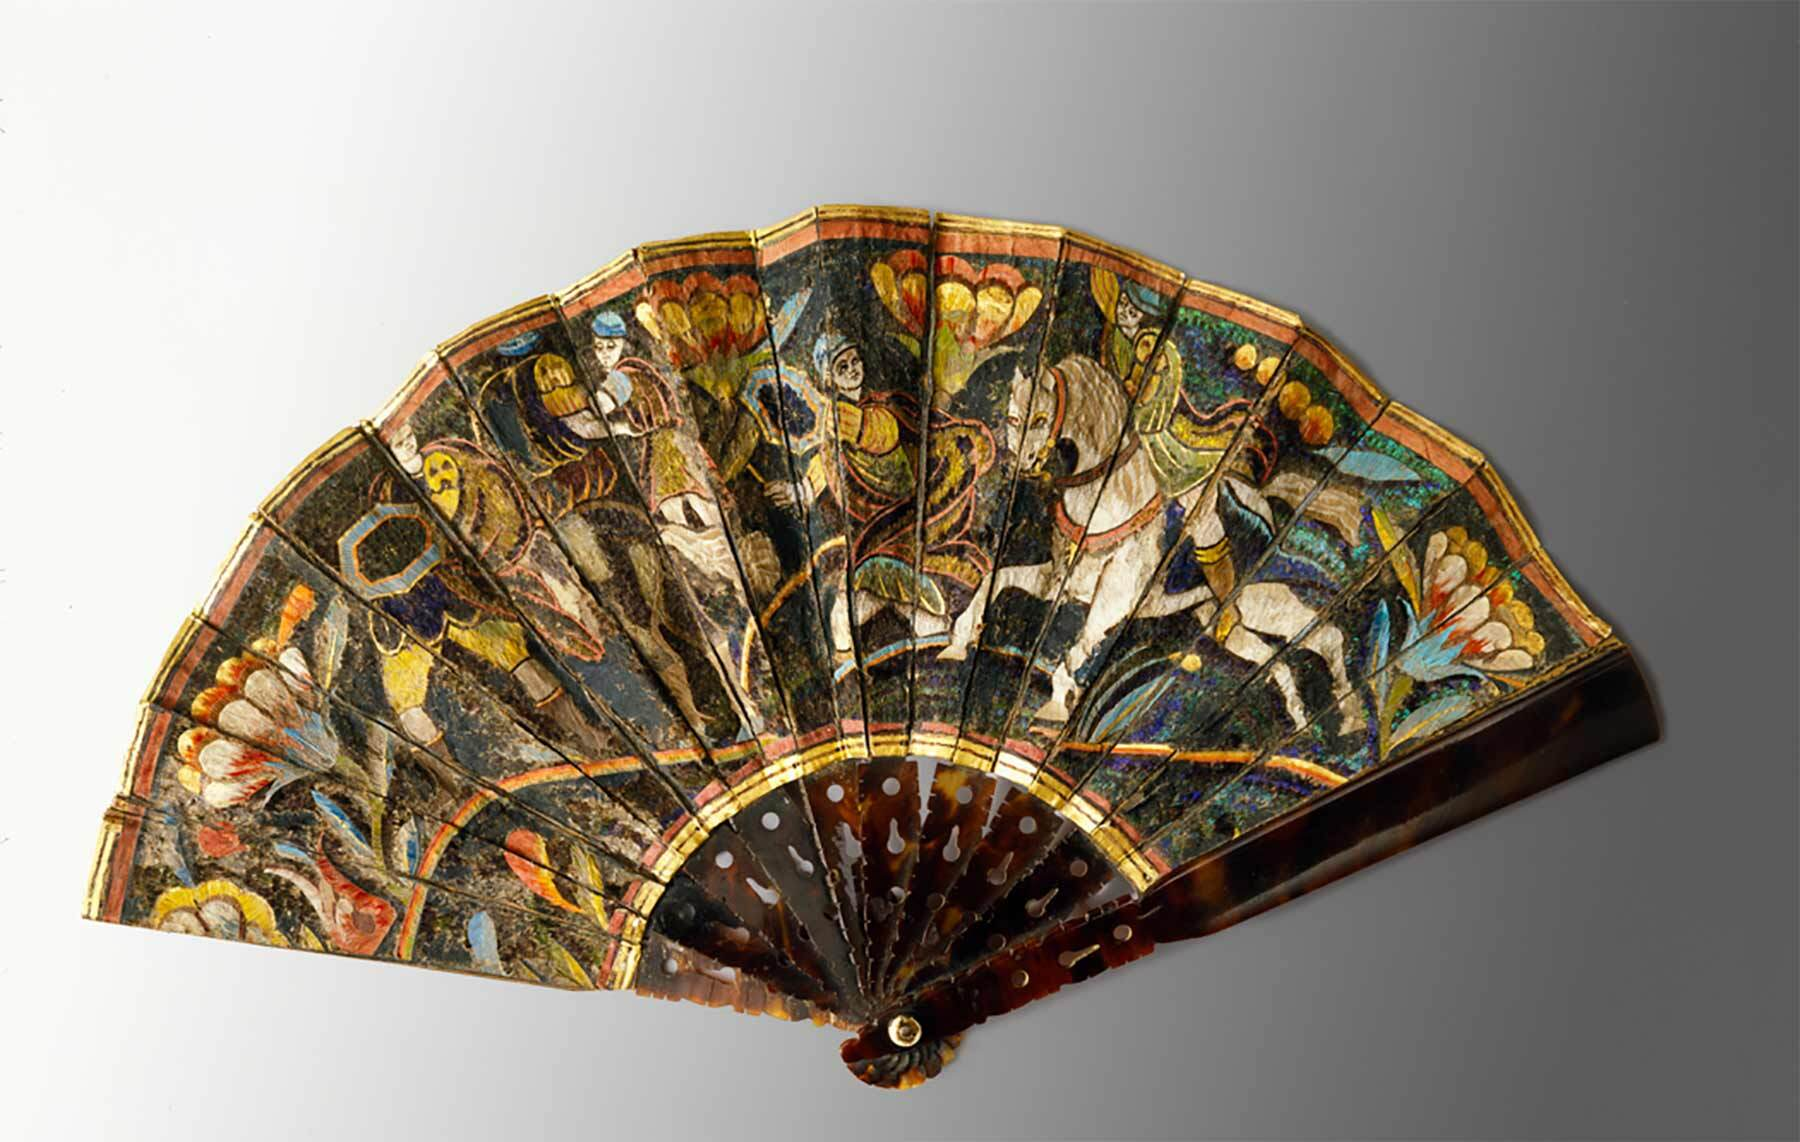 A multi colored open fan with scene on it, 16th century mexican fan.